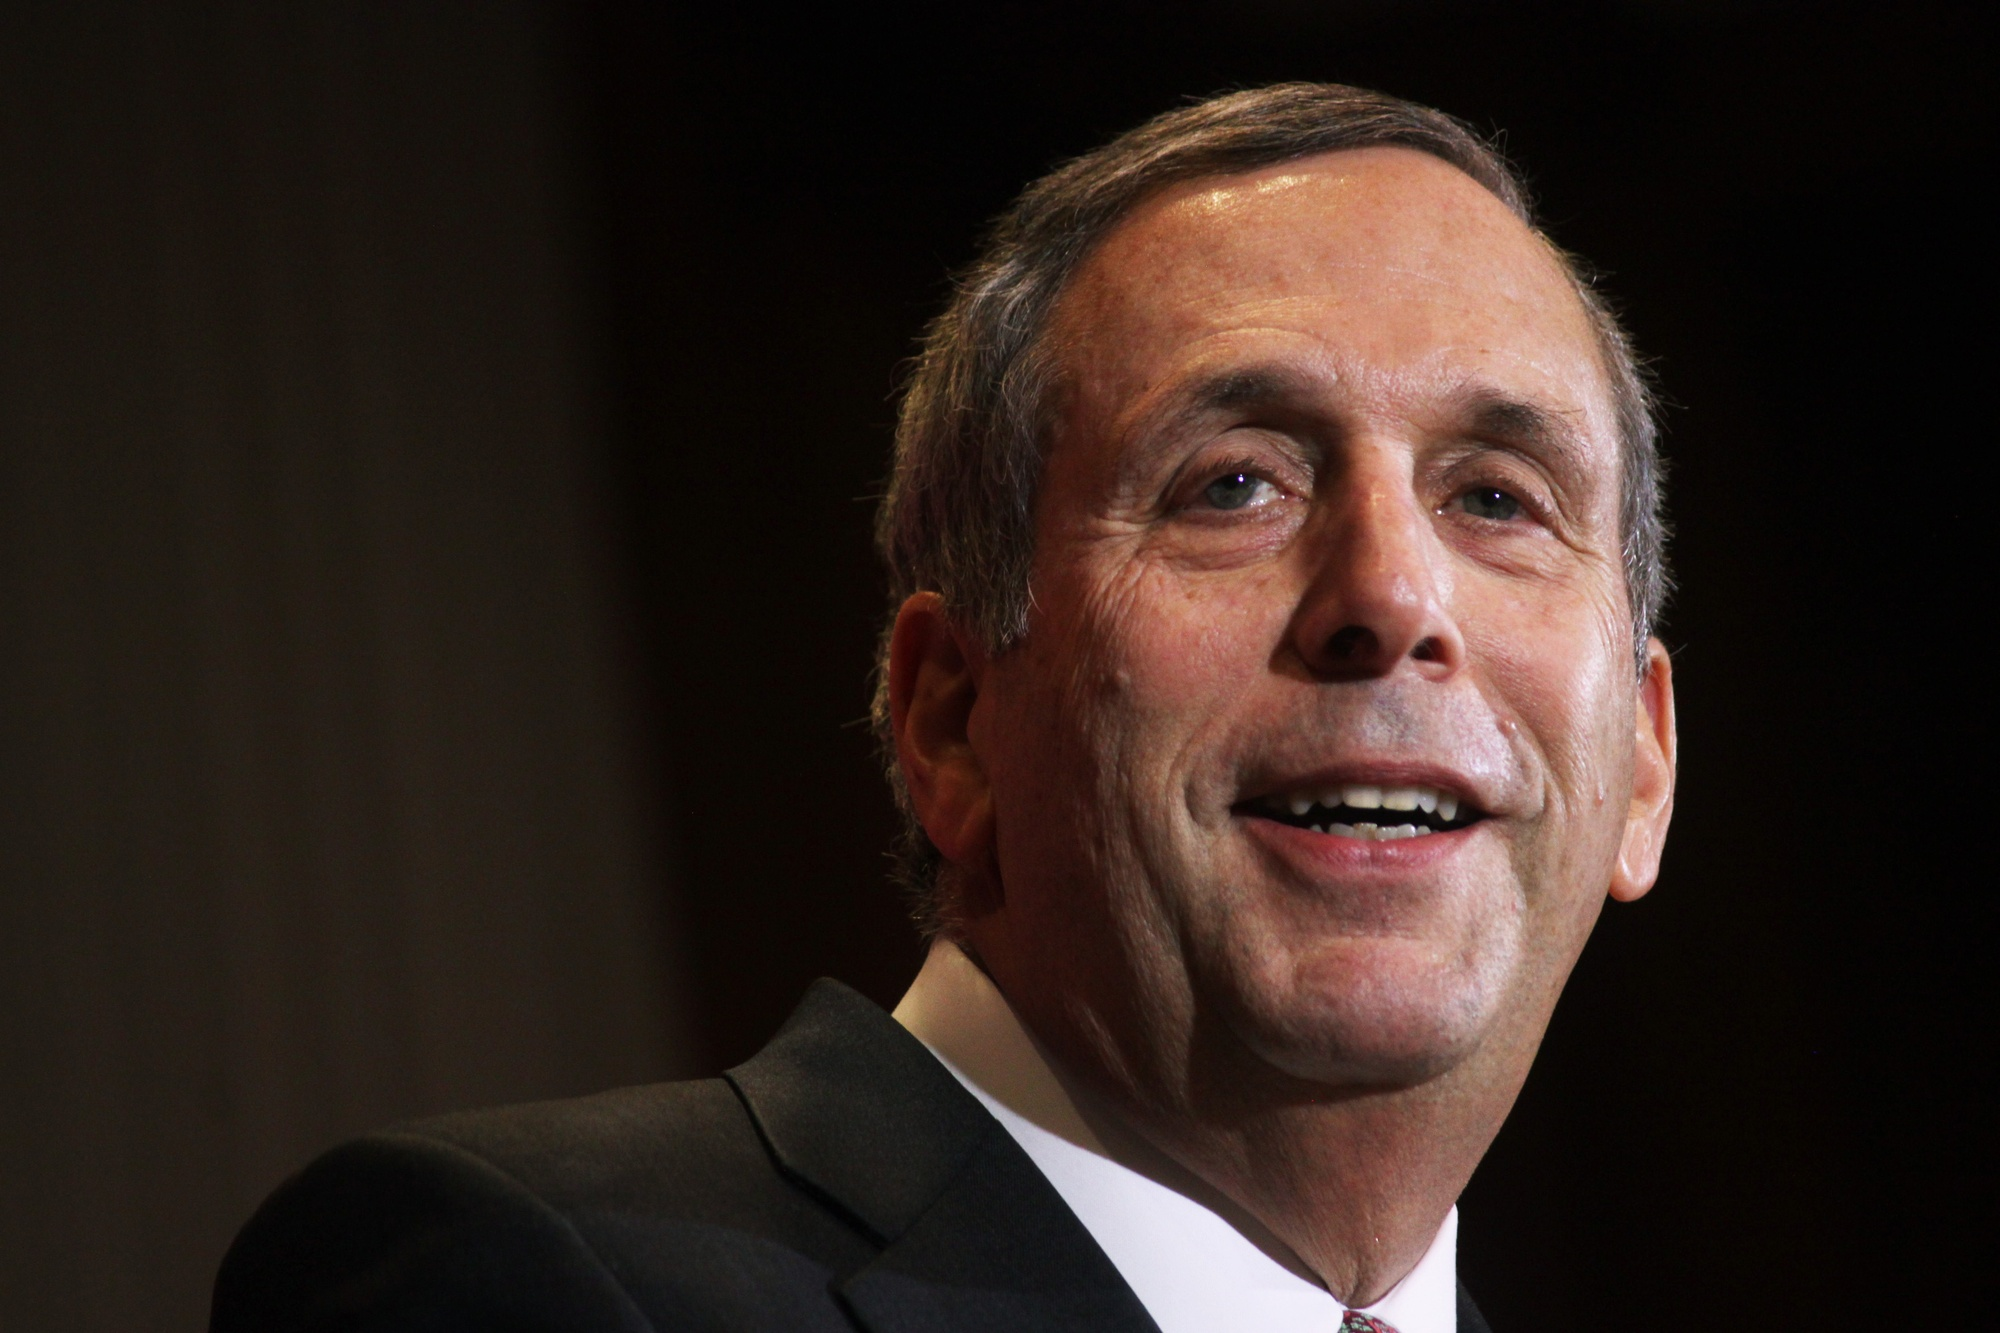 Lawrence S. Bacow was announced Harvard's 29th president in February.